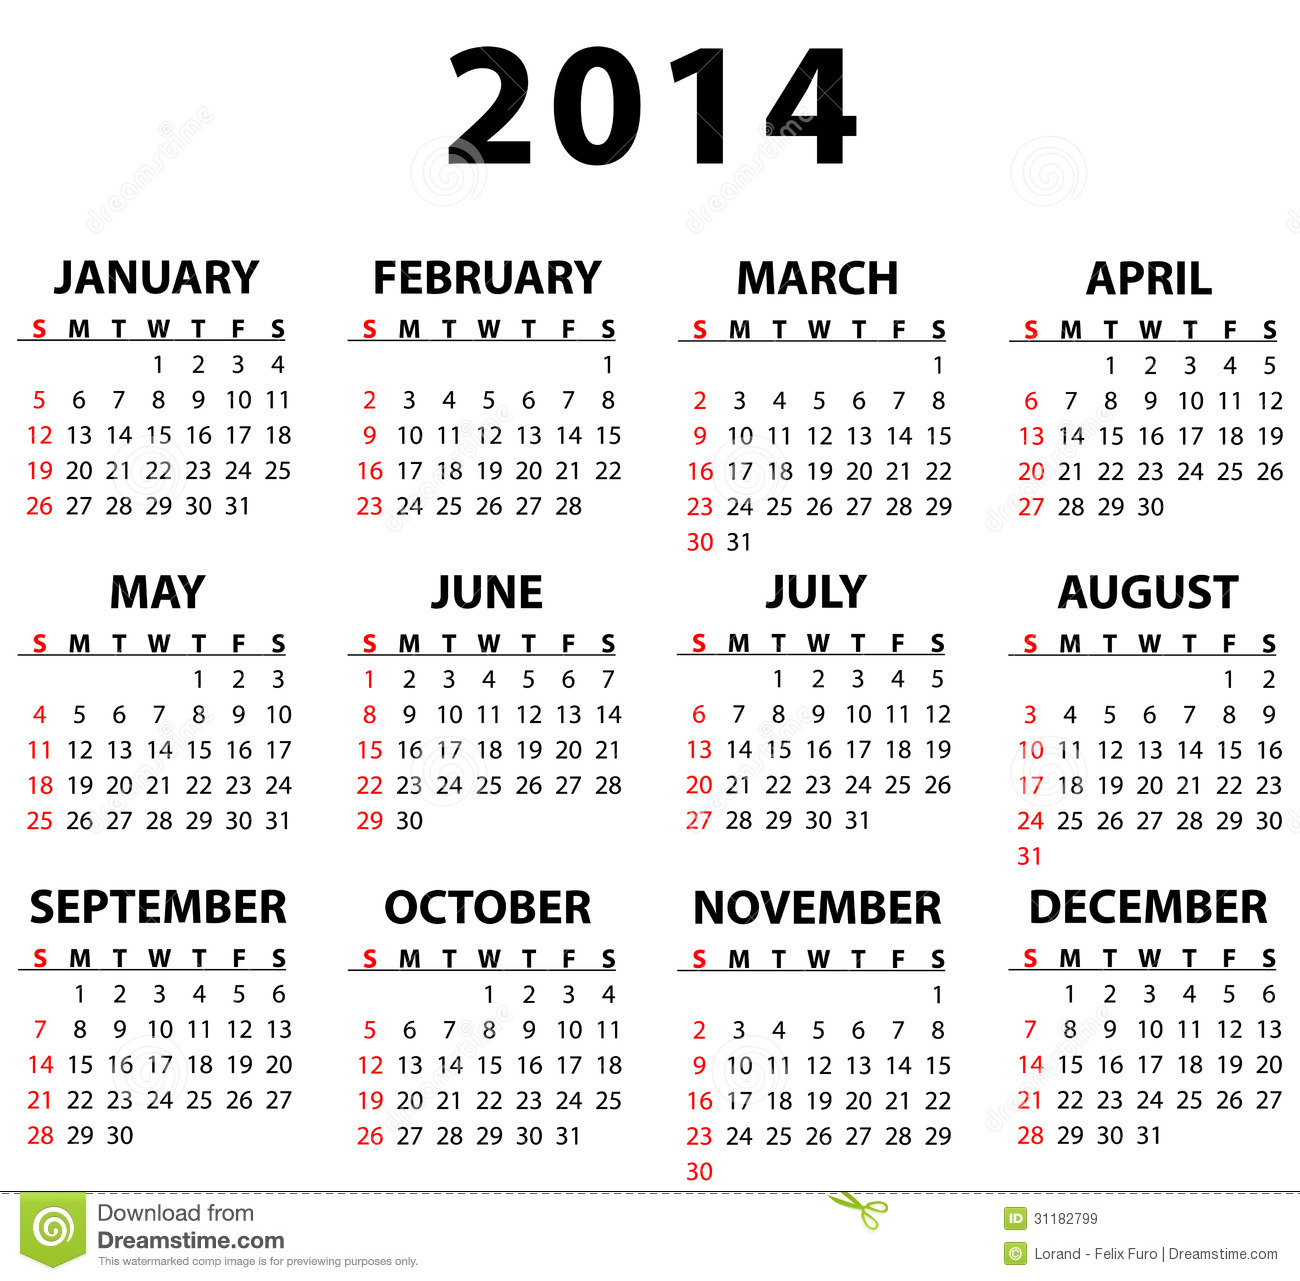 2014 A Critical Year For Our Movement